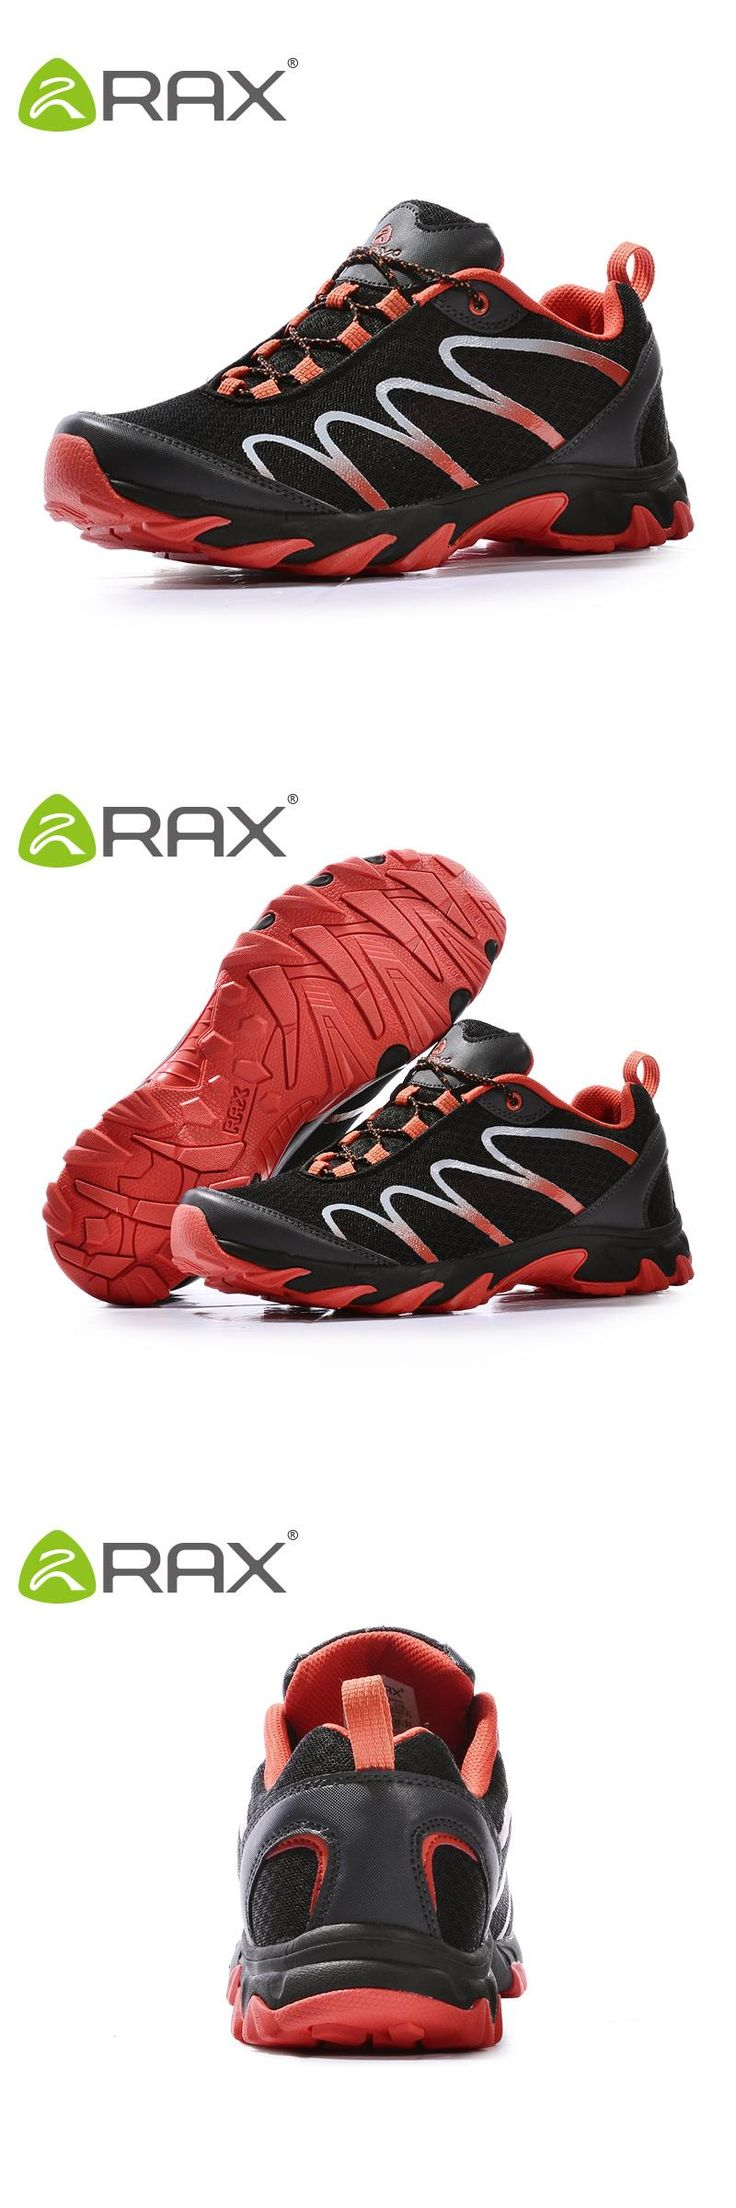 Equipement trail boutique running sports outdoor shop -  Visit To Buy Rax Men S Trail Running Shoes Breathable Lightweight Outdoor Sports Shoes Mesh